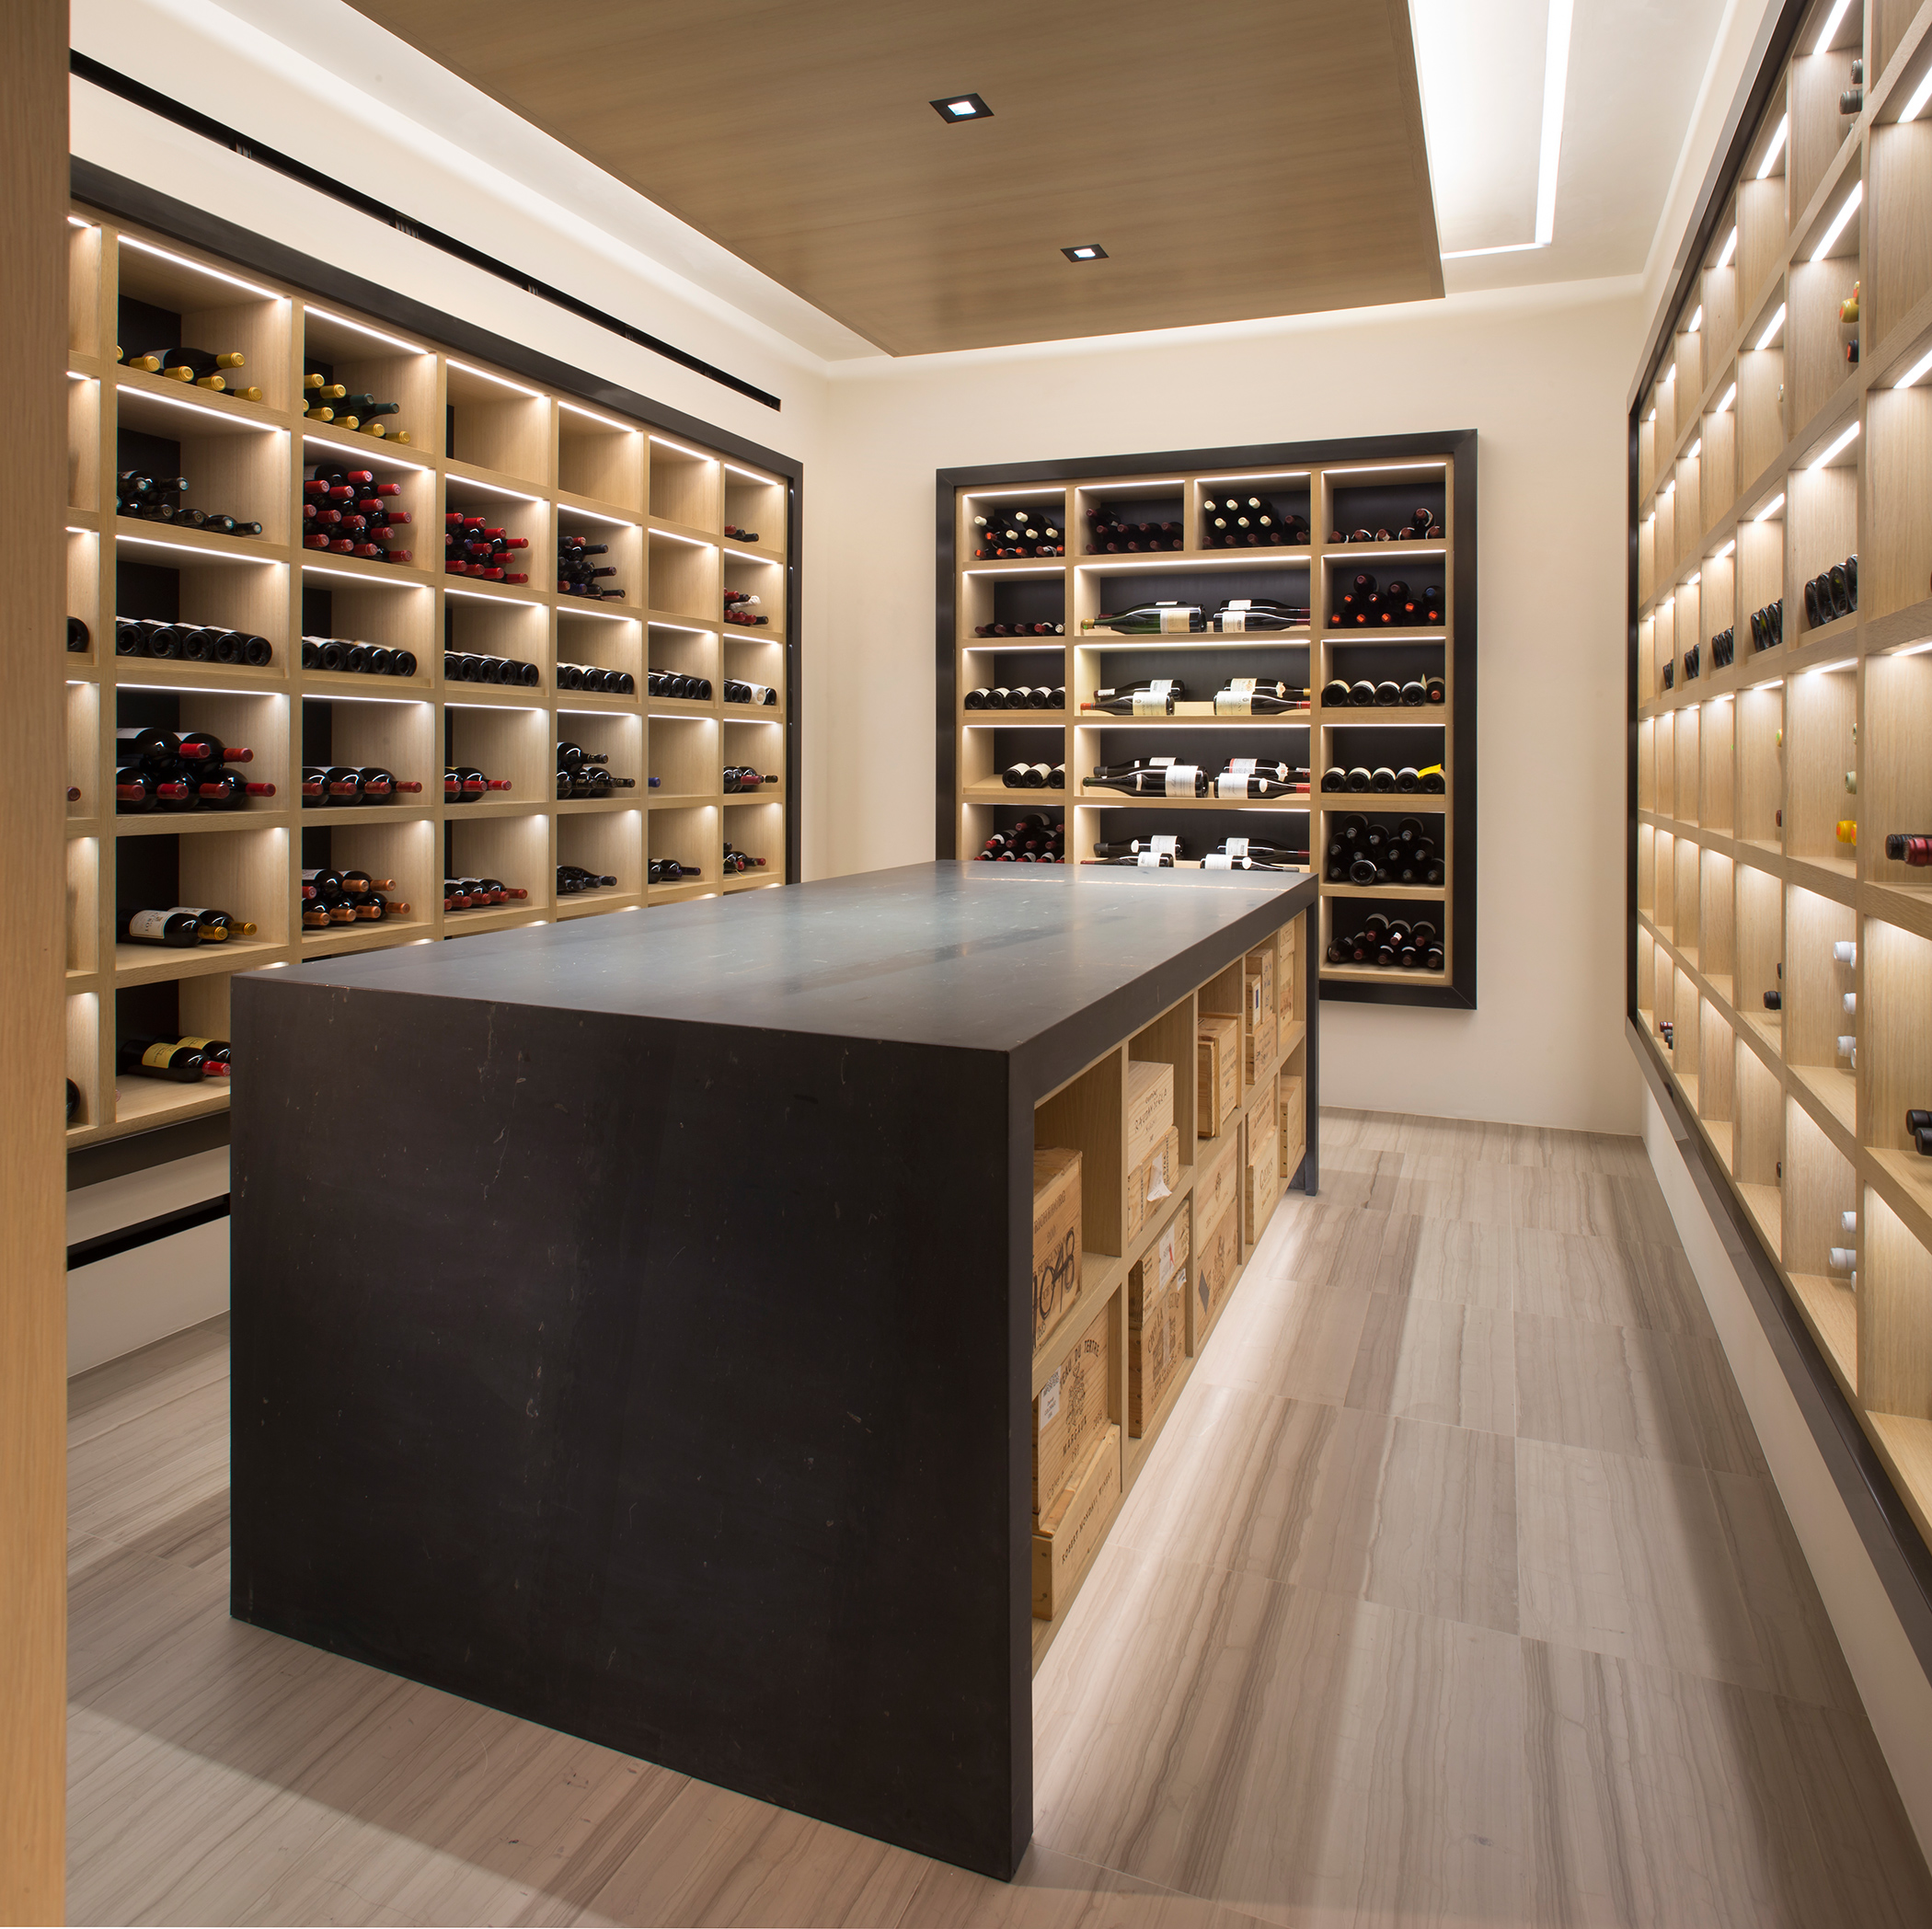 Modern Interior Design Review: Mountain Wine Cellar